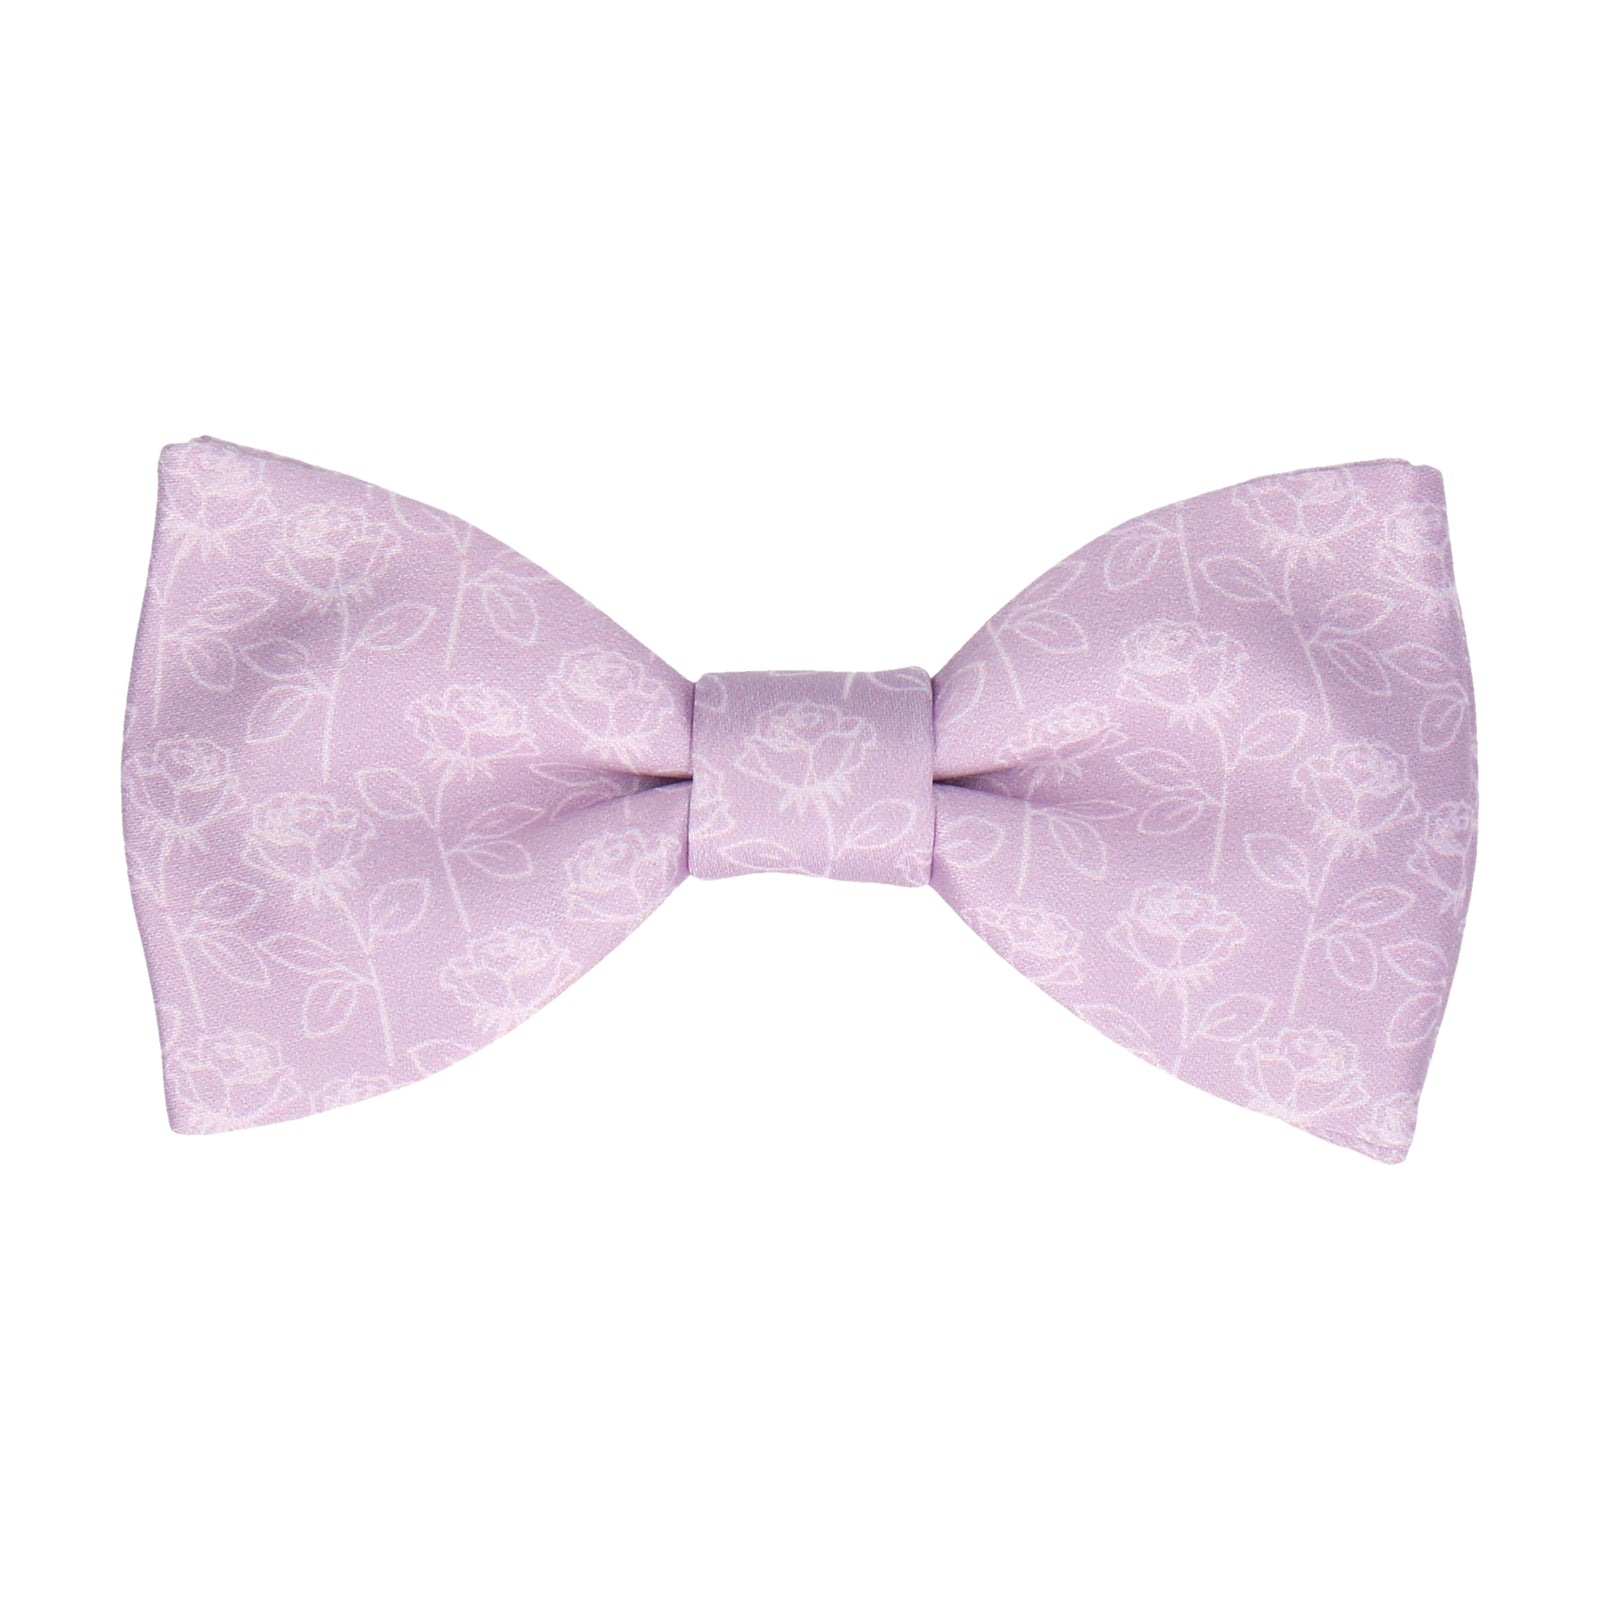 Wisteria Lilac Stencil Roses Wedding Bow Tie